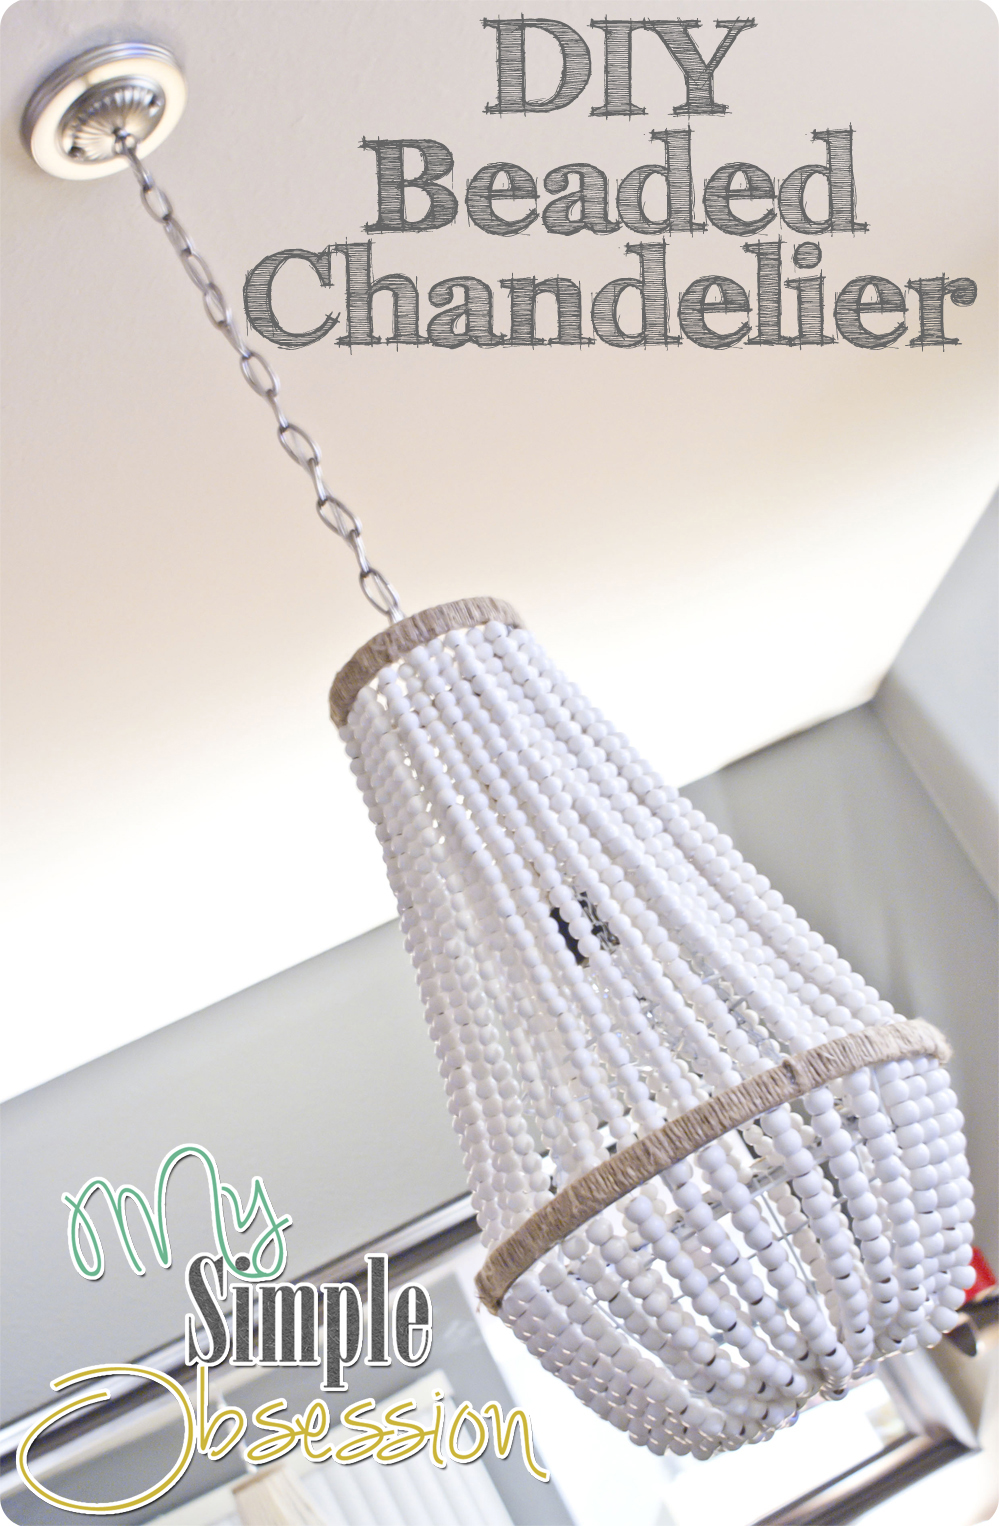 Beaded Chandelier Tutorial